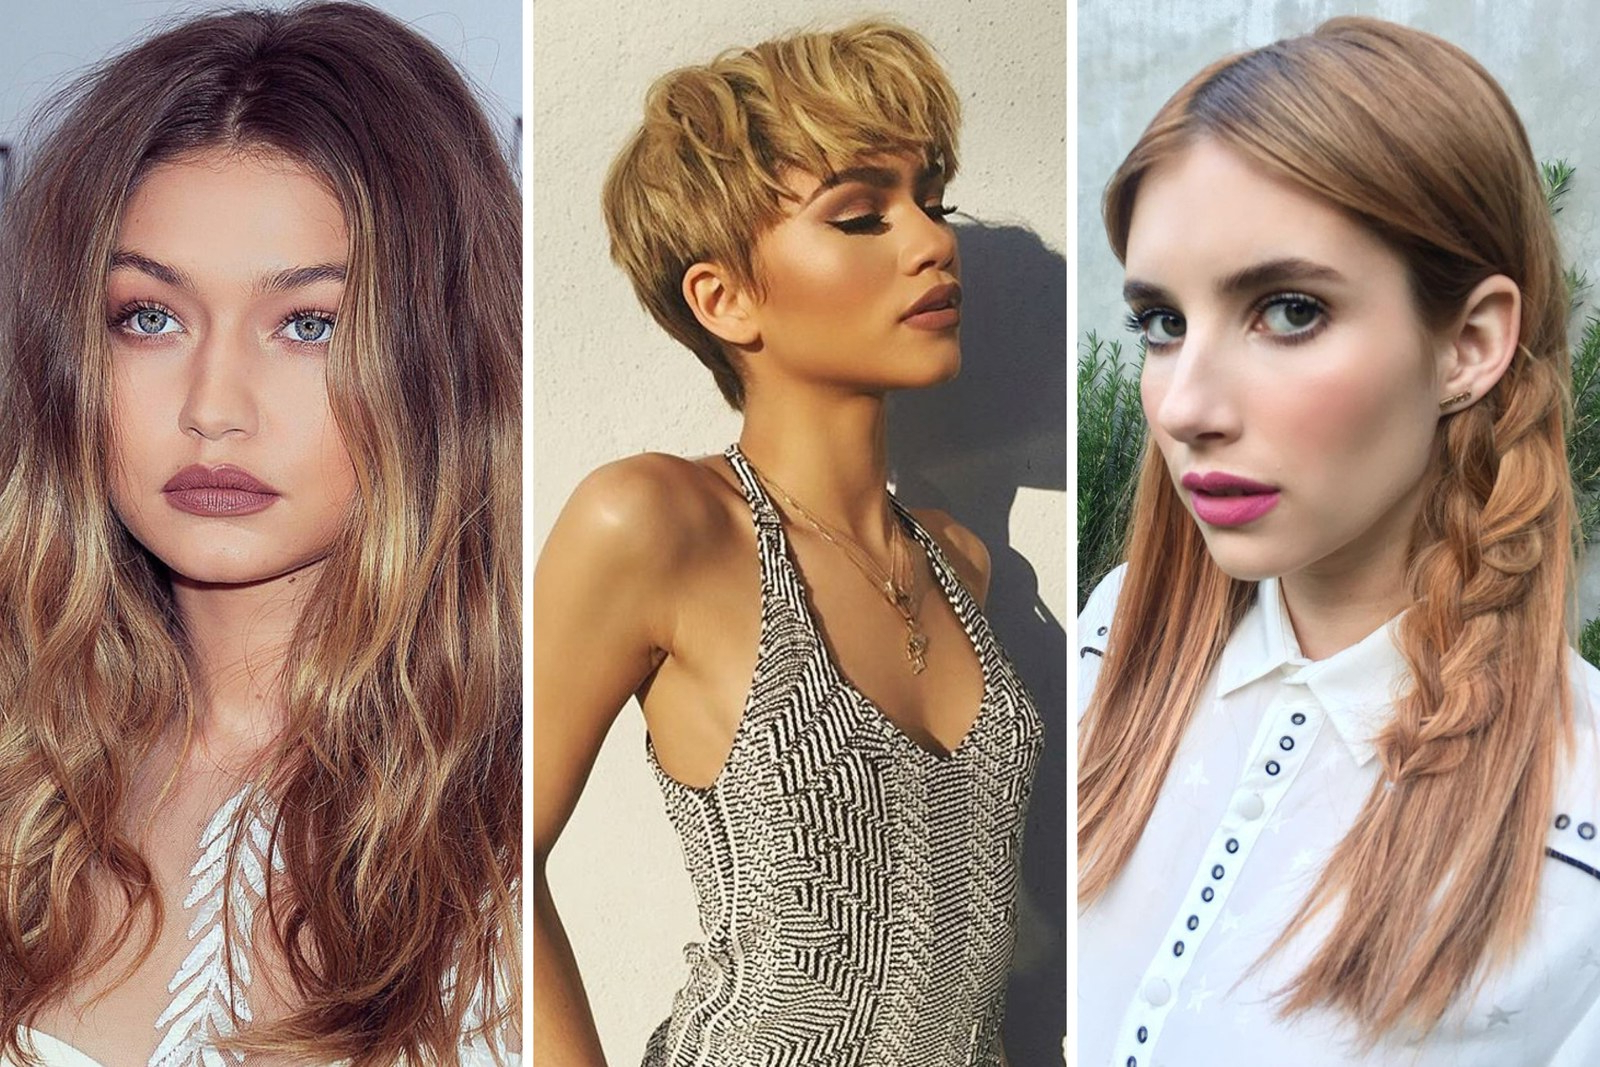 Foolproof Graduation Hair Ideas – Teen Vogue In Graduation Cap Hairstyles For Short Hair (View 12 of 25)